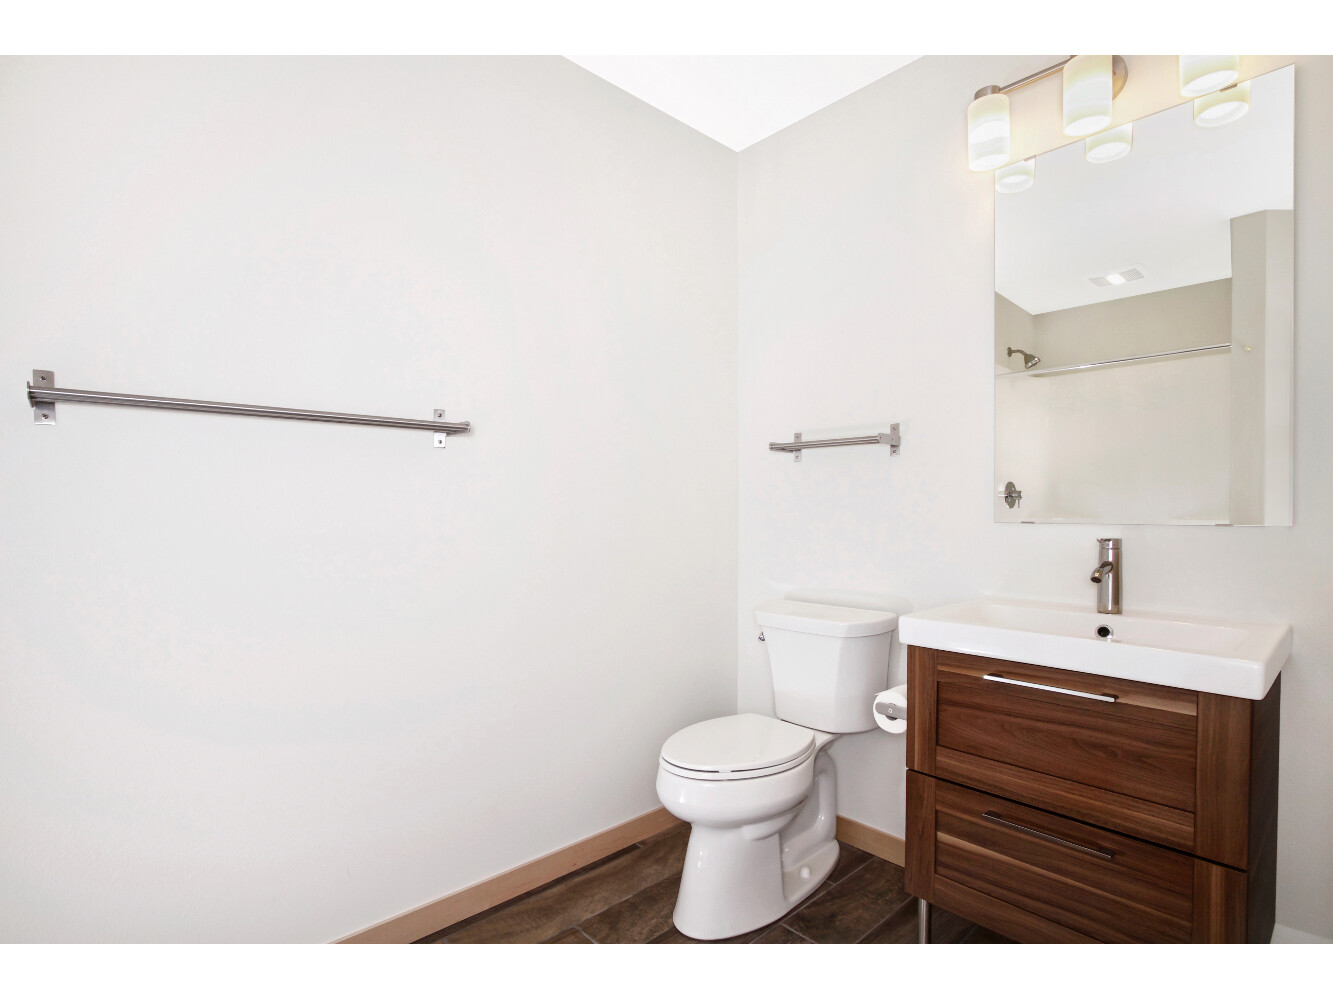 Bathroom Roush Rentals